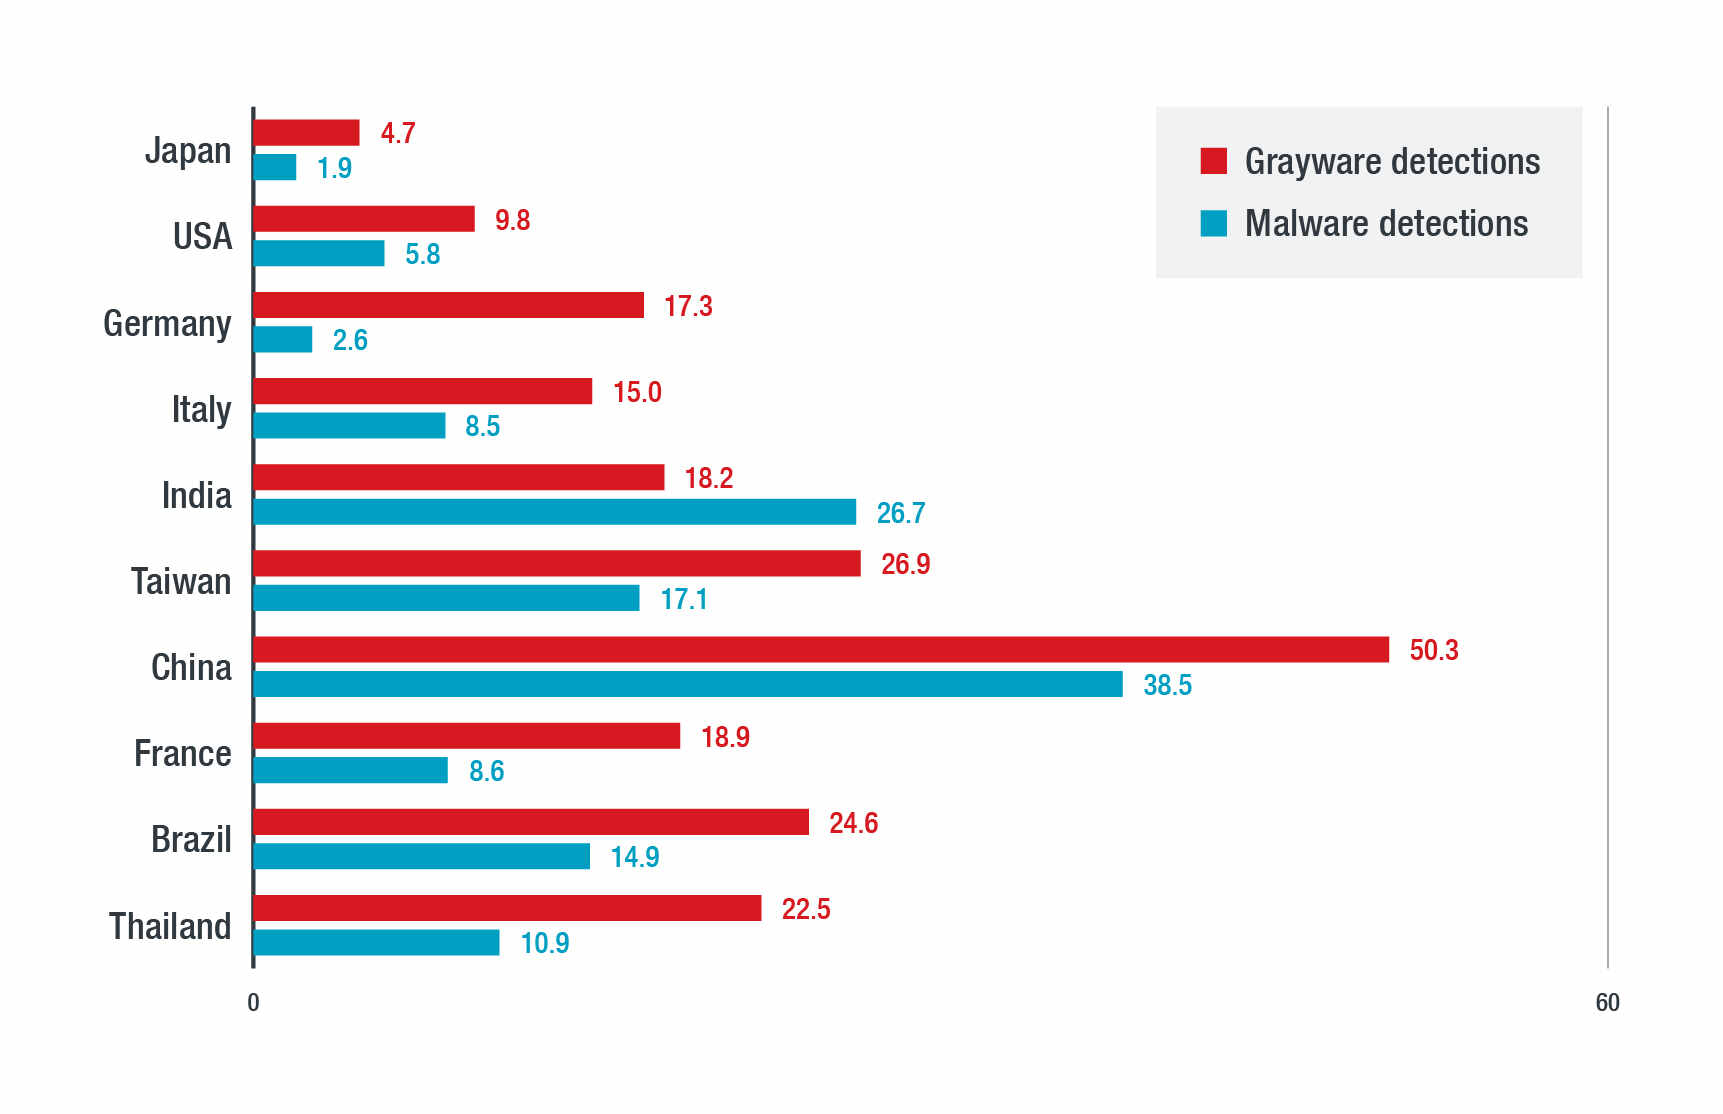 Figure 1. Top 10 countries' percentage of ICS with malware and grayware detections